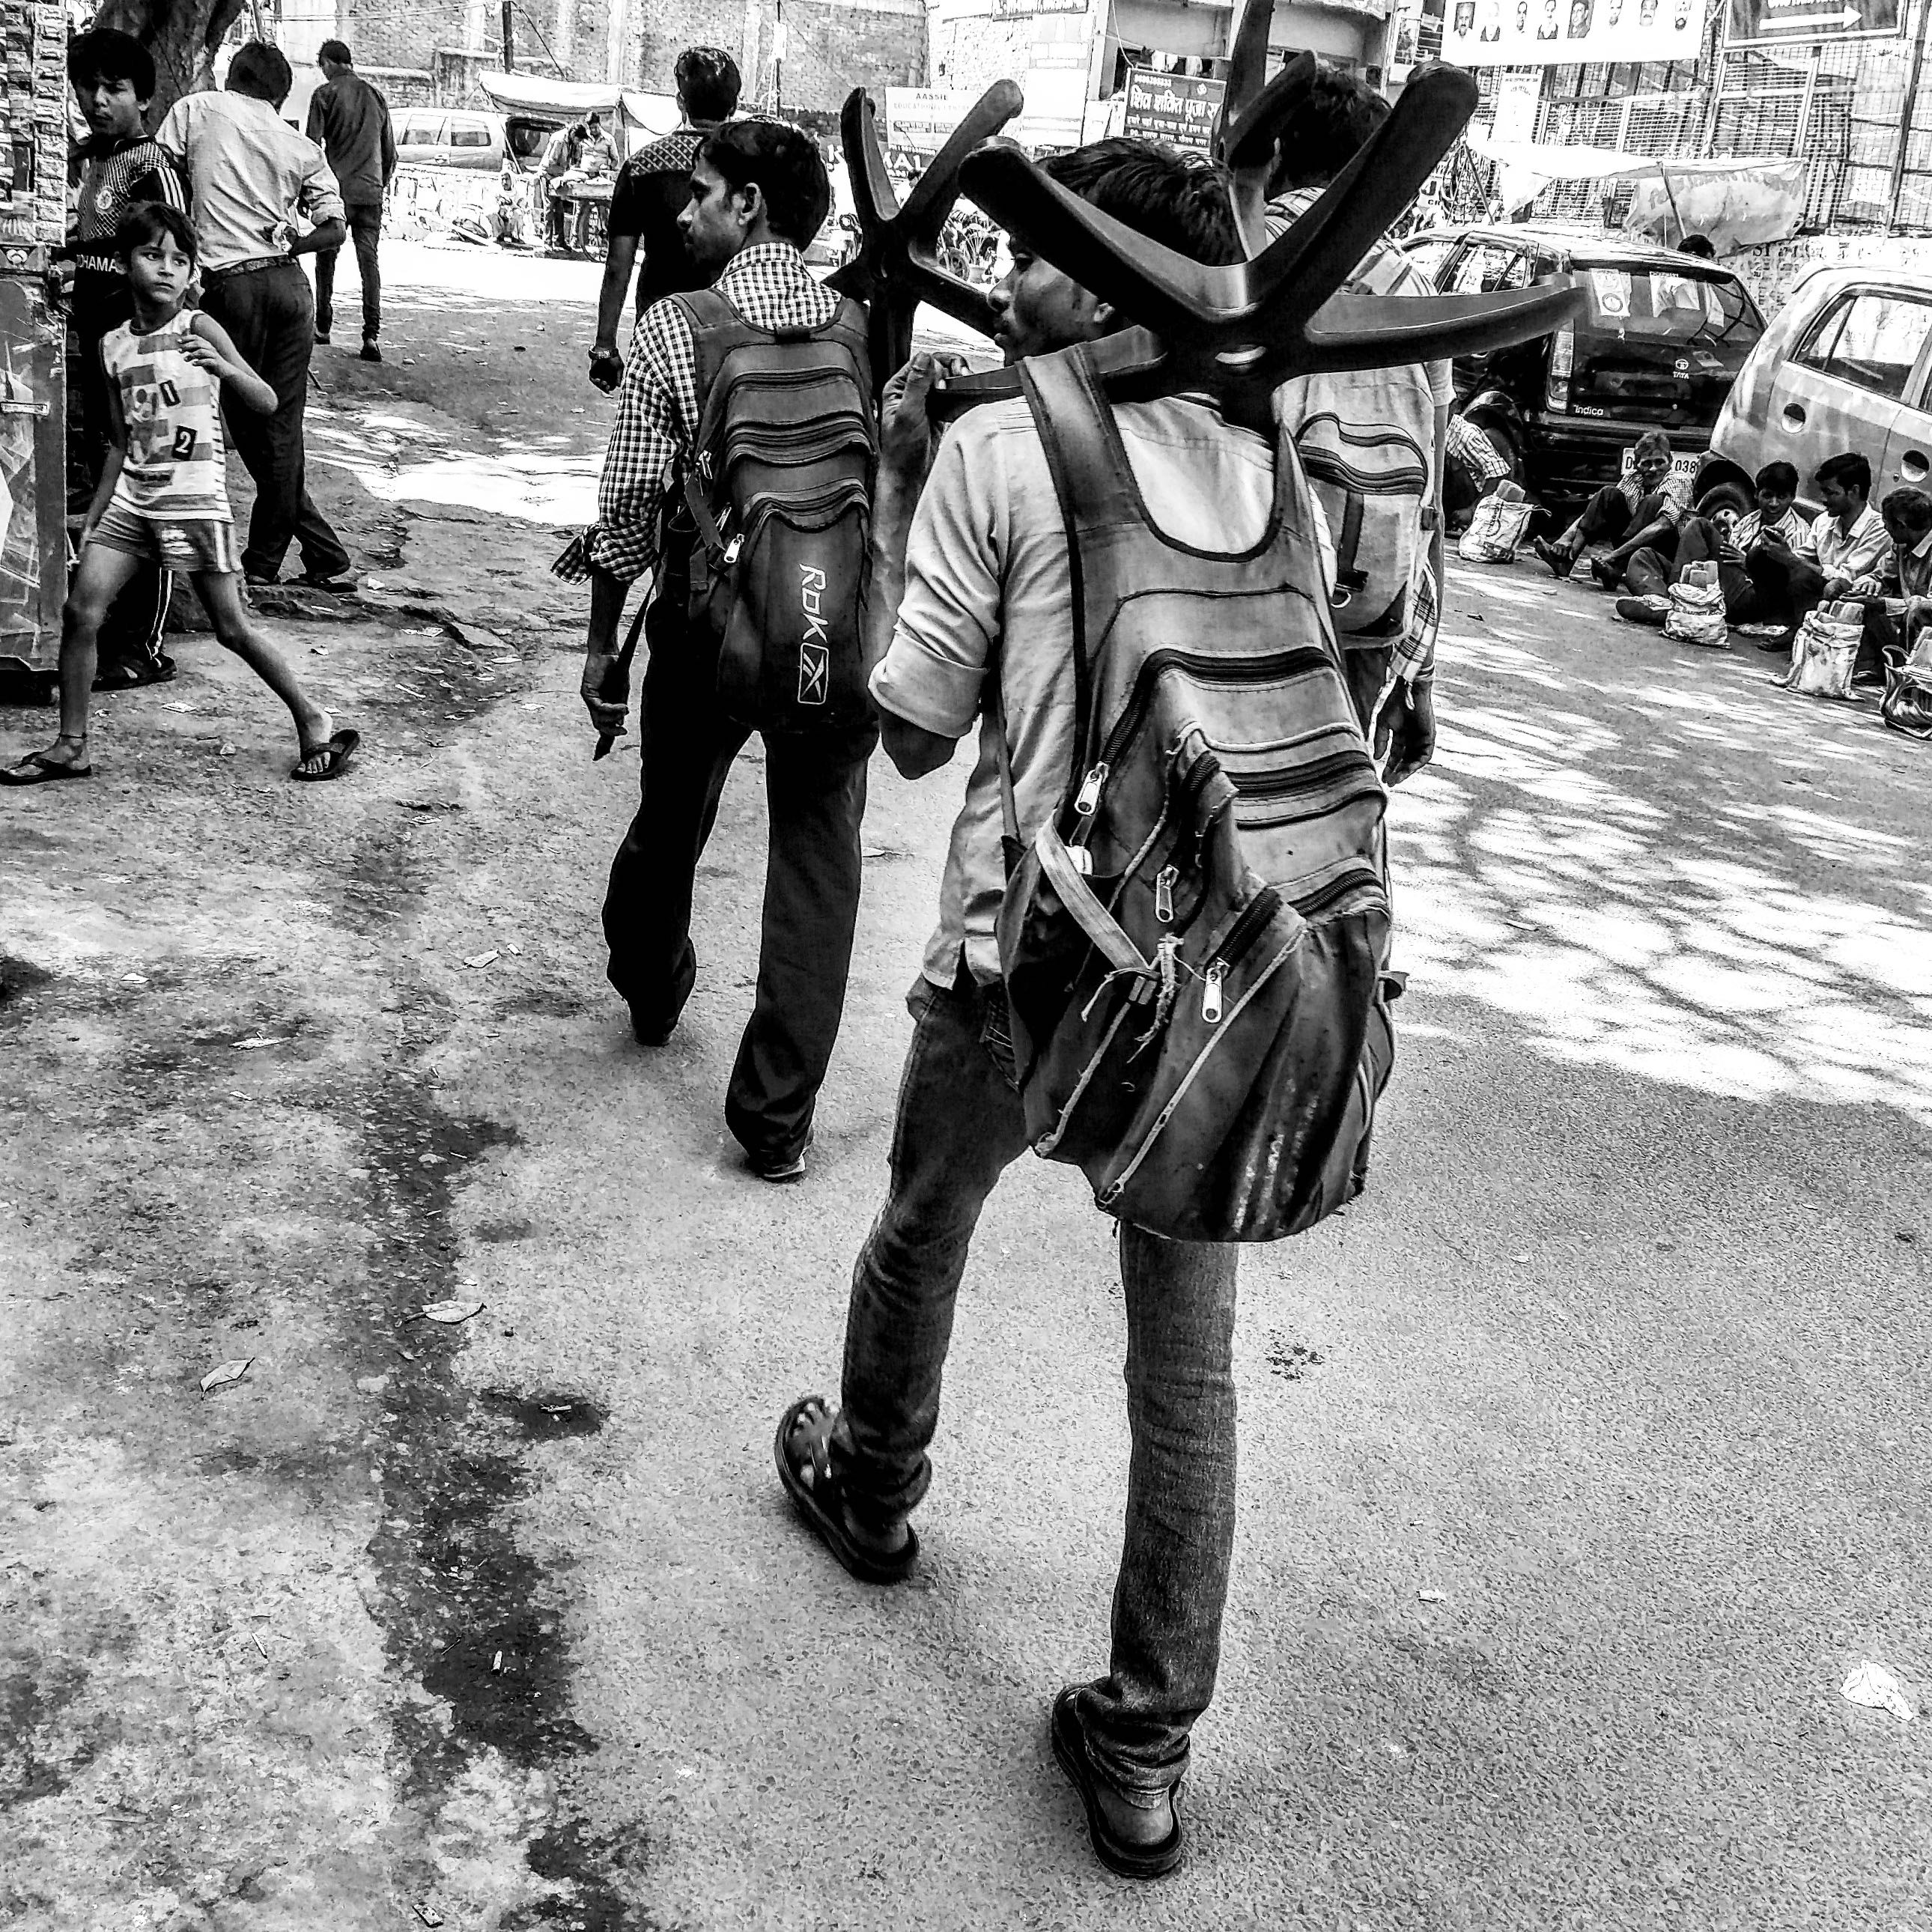 A boy looks on as a group of repair men with chair-wheels placed on their shoulders walk by.